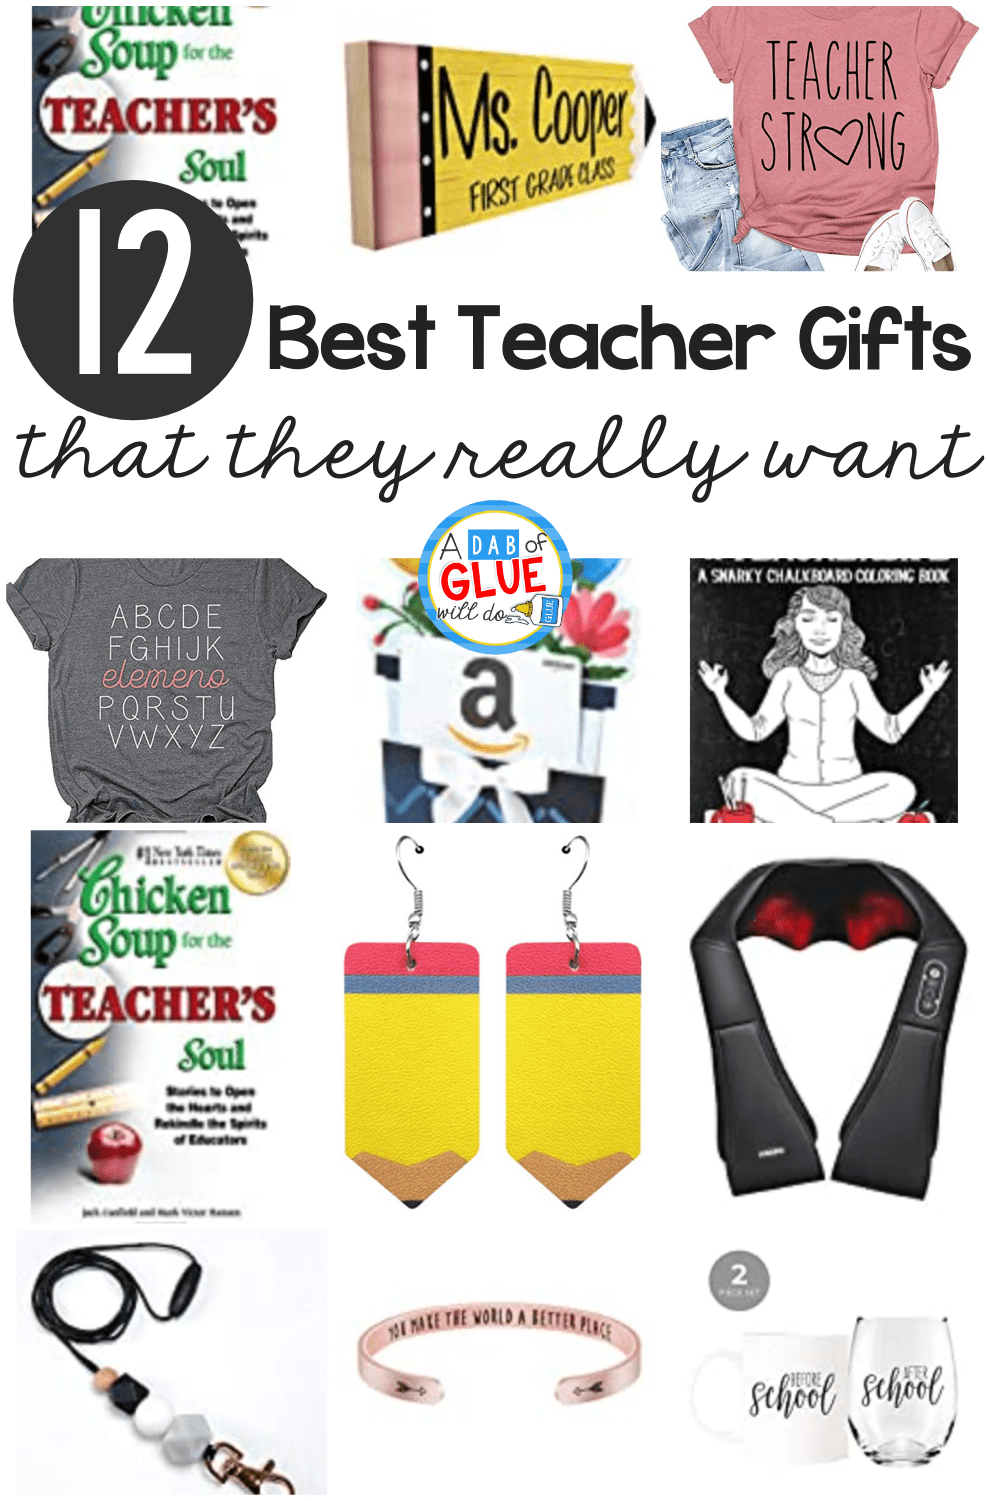 The Top 12 Best Teacher Gifts Teachers Always Ask For